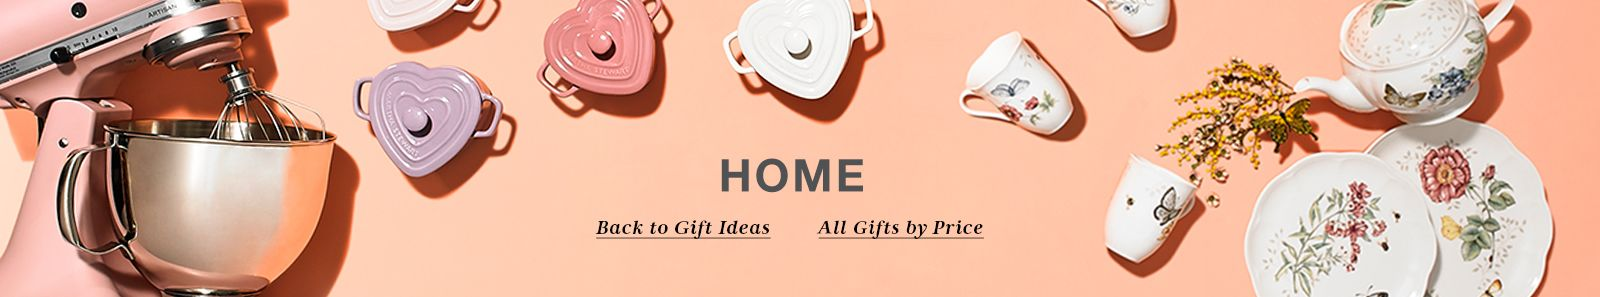 Home, Back to Gift Ideas, All Gifts by Price